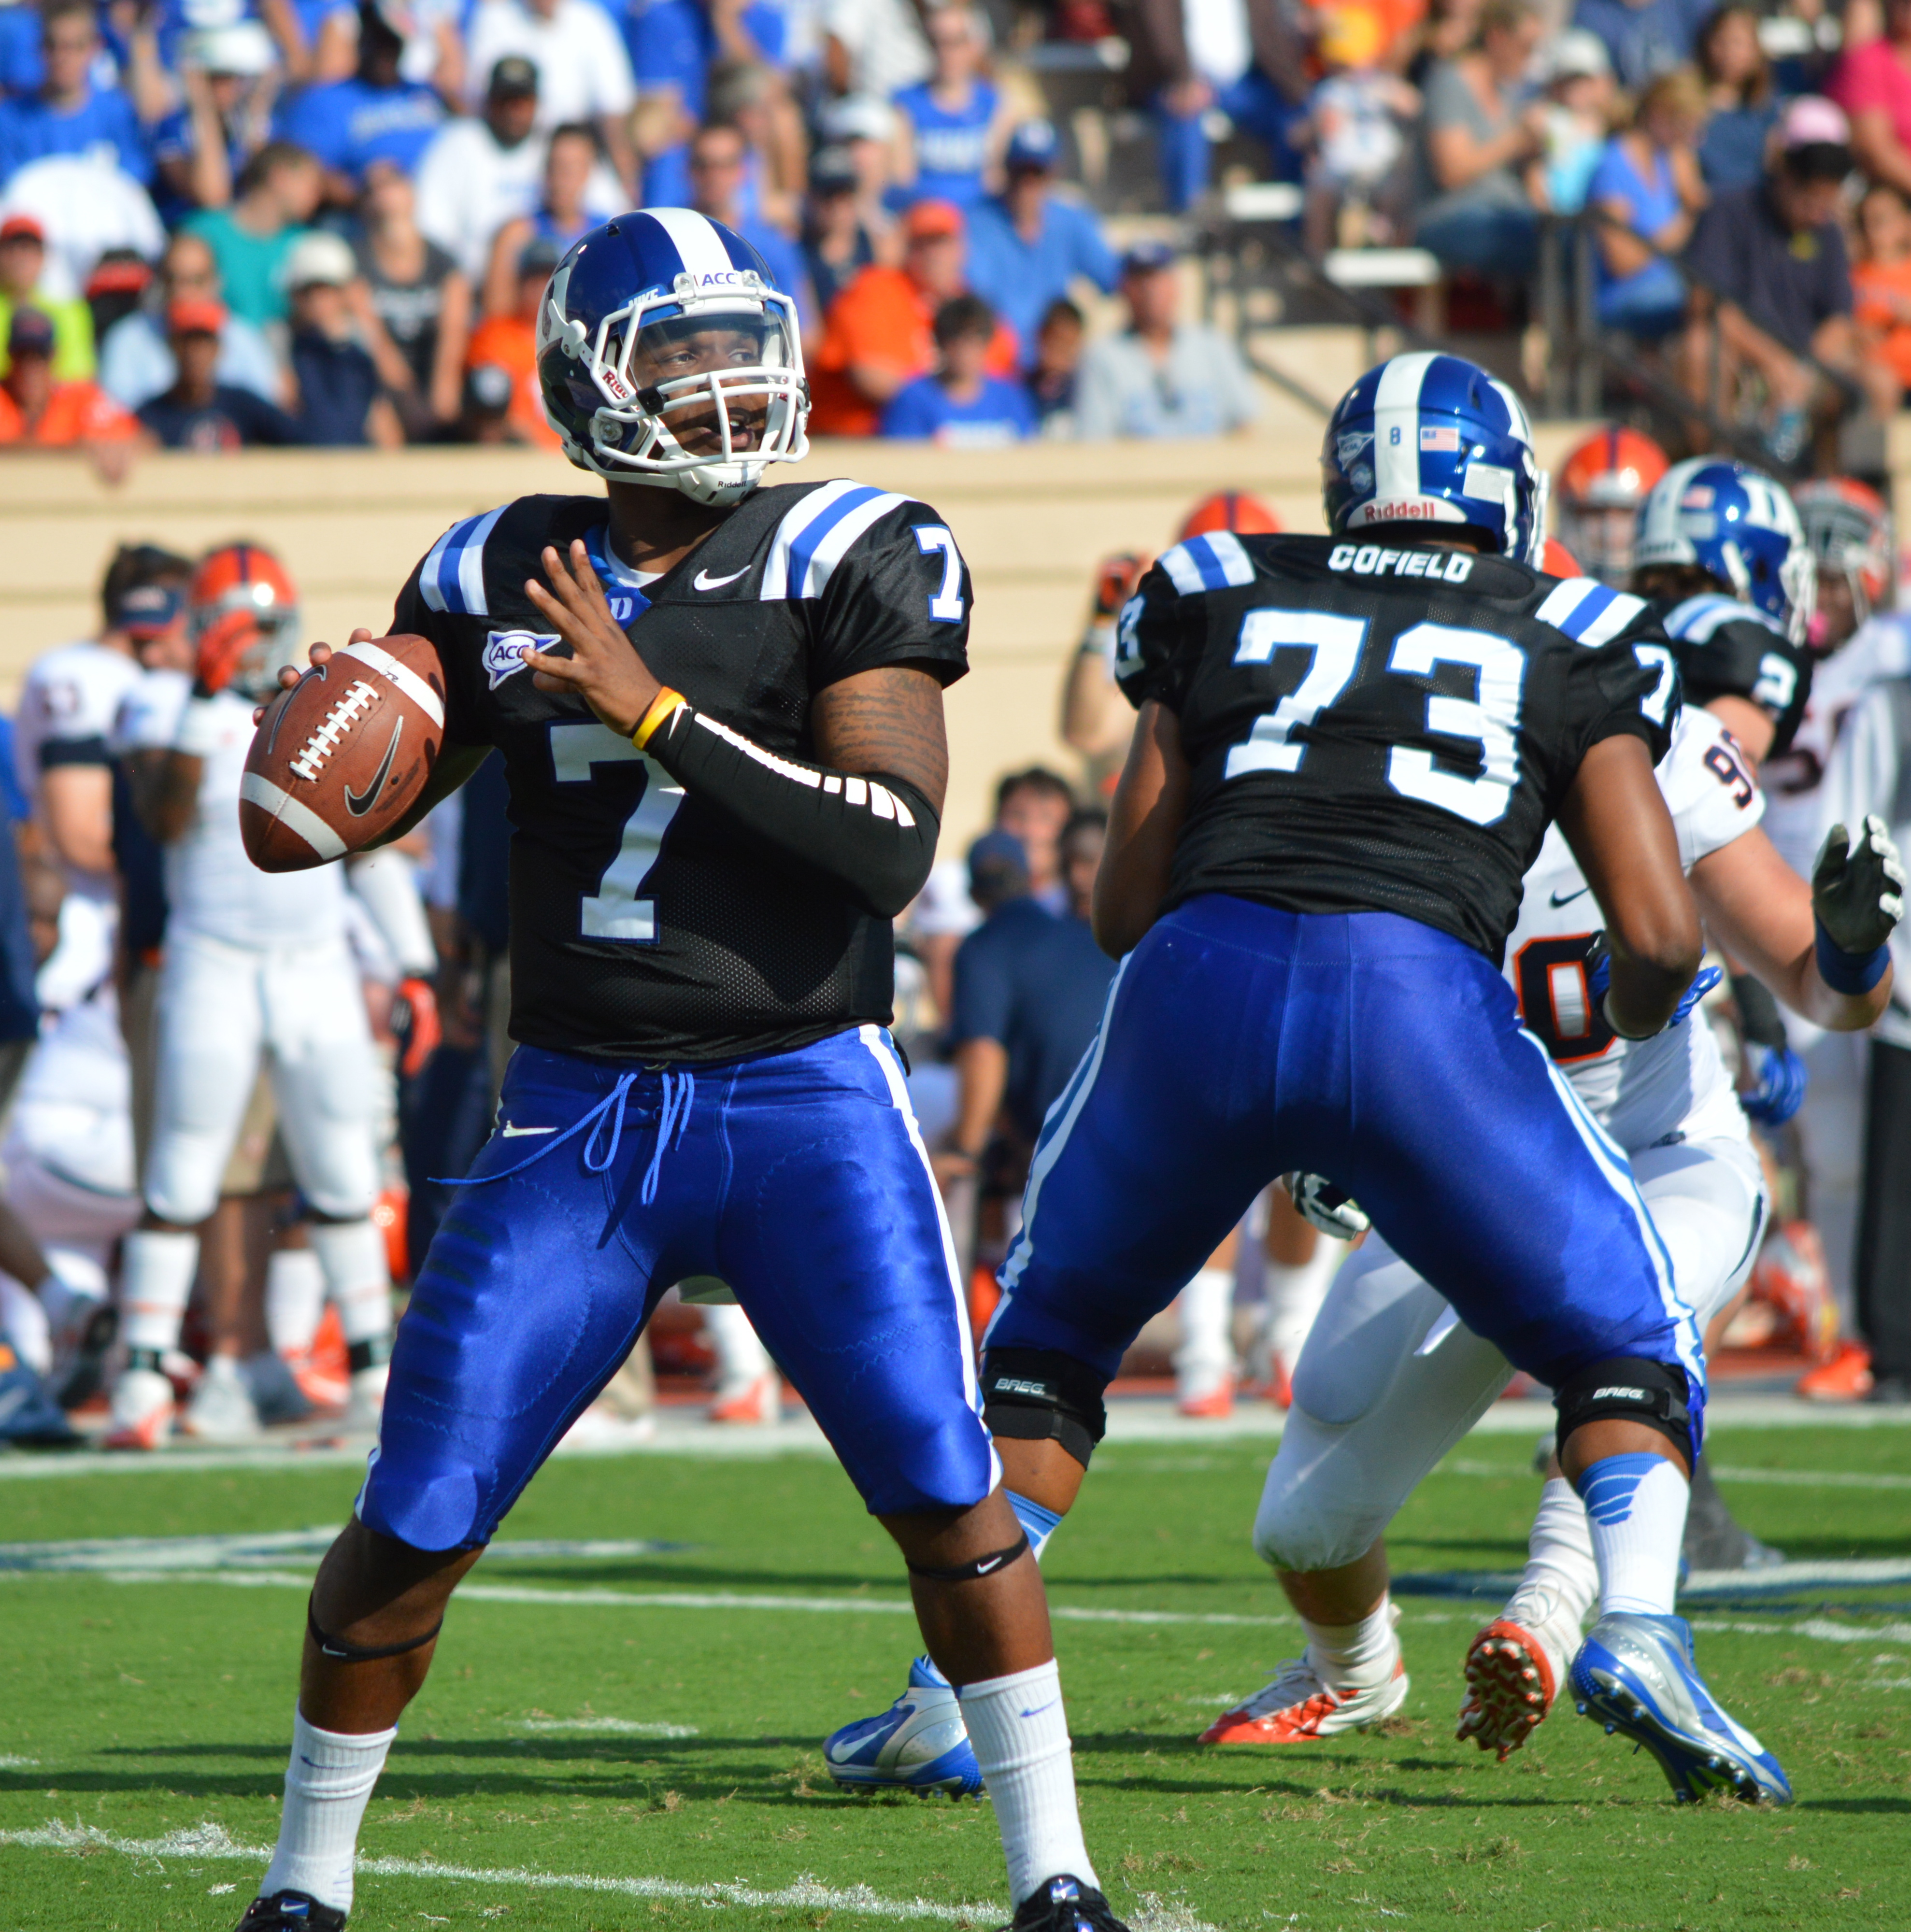 QB Anthony Boone led the Blue Devils to a 42-17 victory over Virginia - BDN Photo